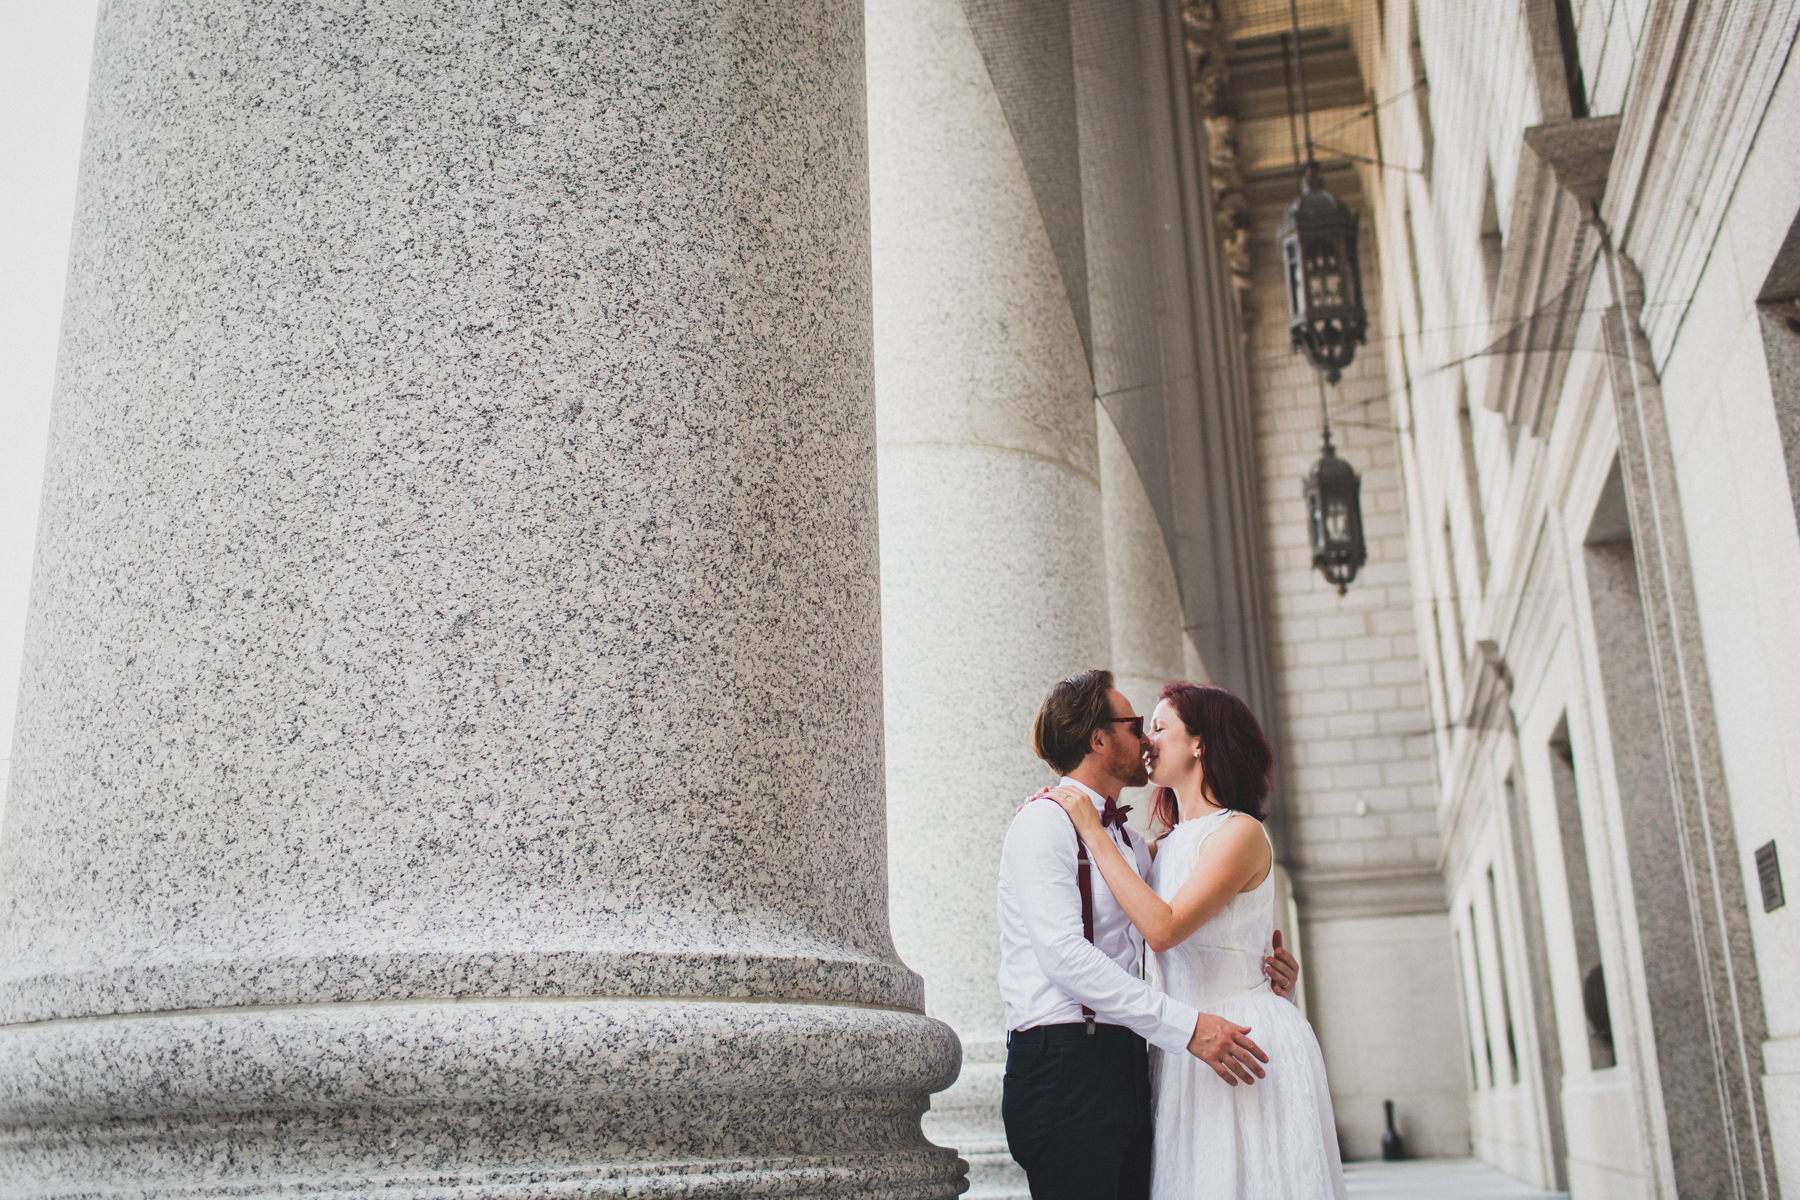 City-Hall-NYC-Elopement-New-York-Documentary-Wedding-Photographer-Elvira-Kalviste-22.jpg